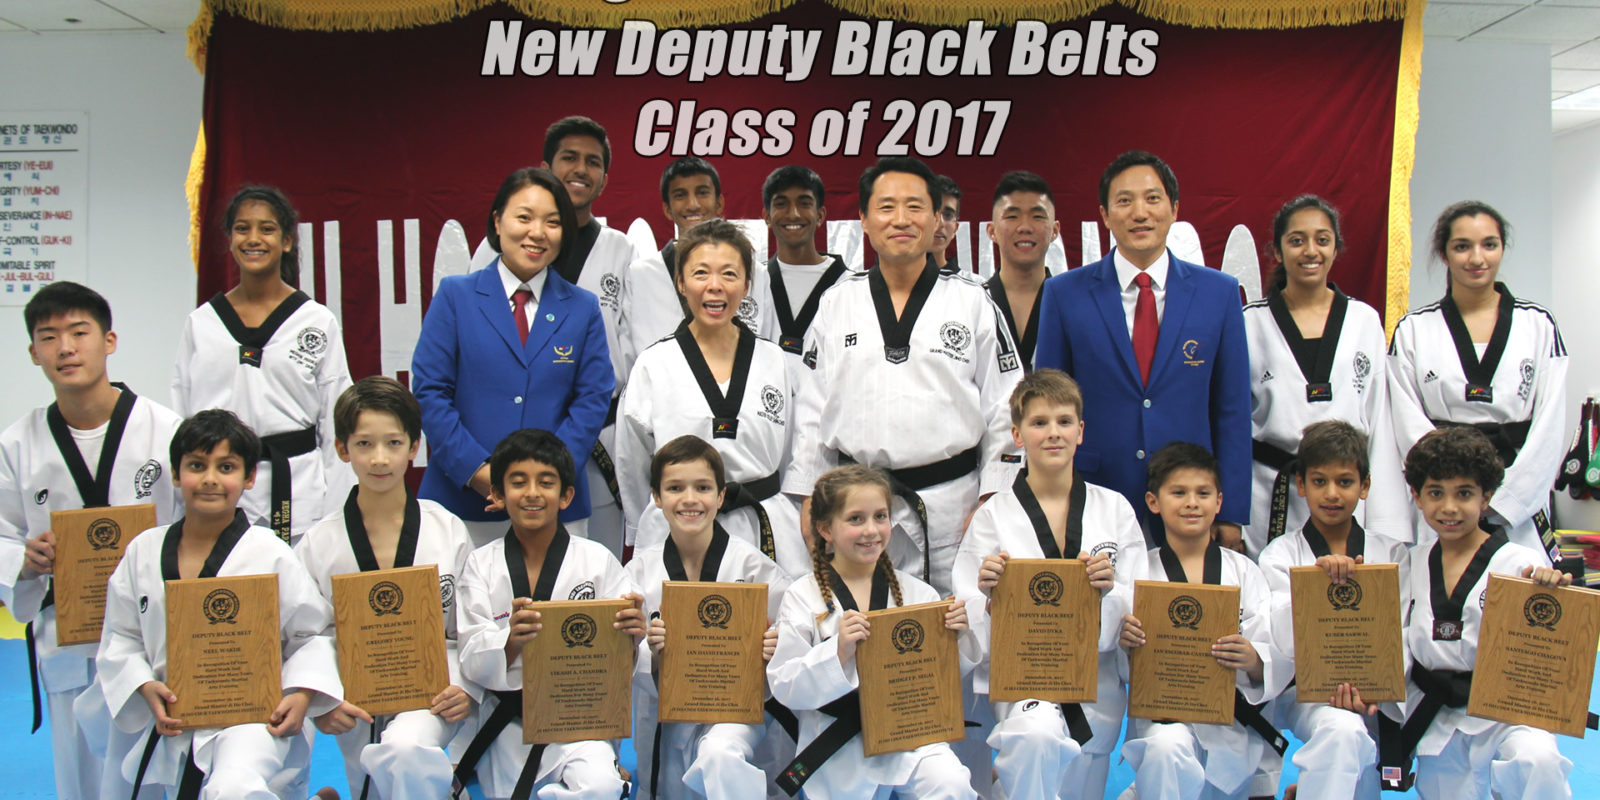 Congratulations to Our Newest Deputy Black Belts!